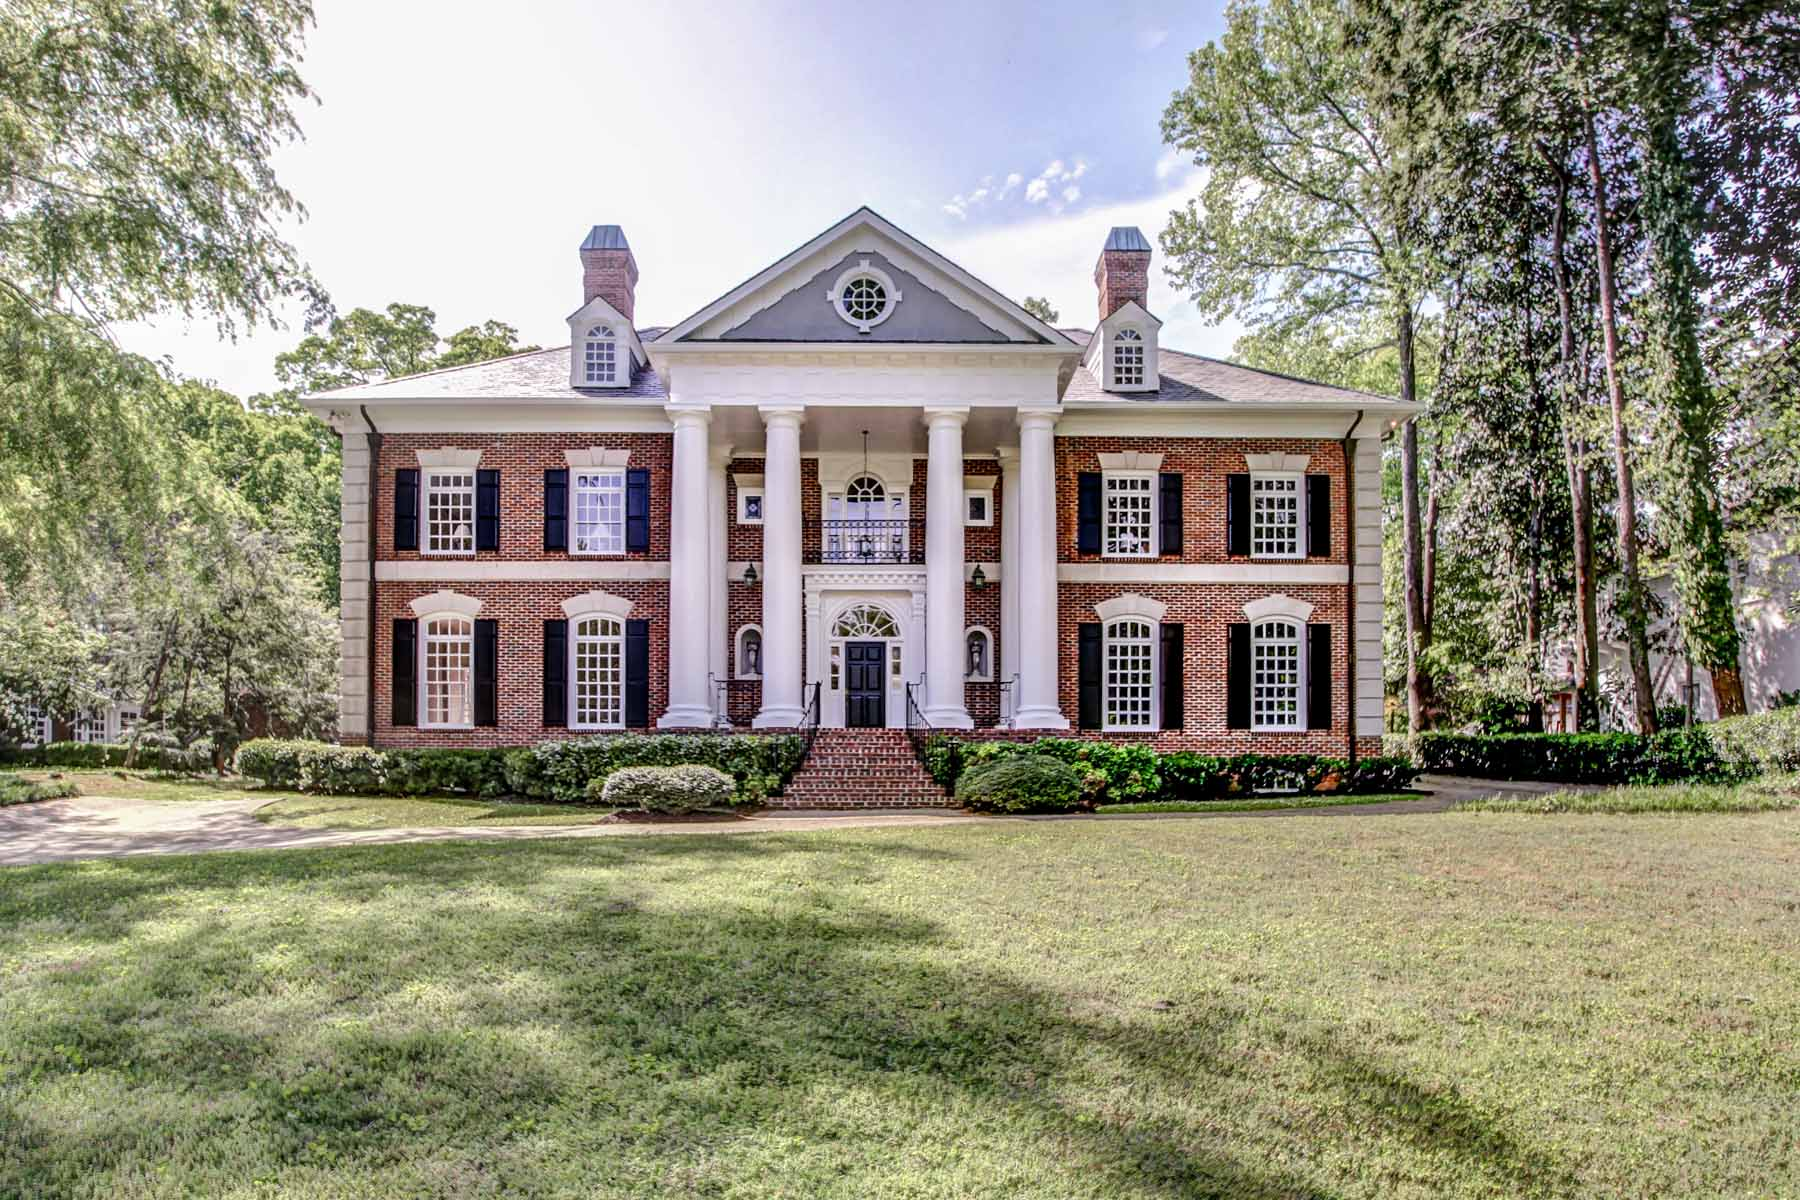 Single Family Home for Sale at First Time Available on Market-Majestic Custom Built Druid Hills Classic! 900 Oakdale Road Druid Hills, Atlanta, Georgia, 30307 United States